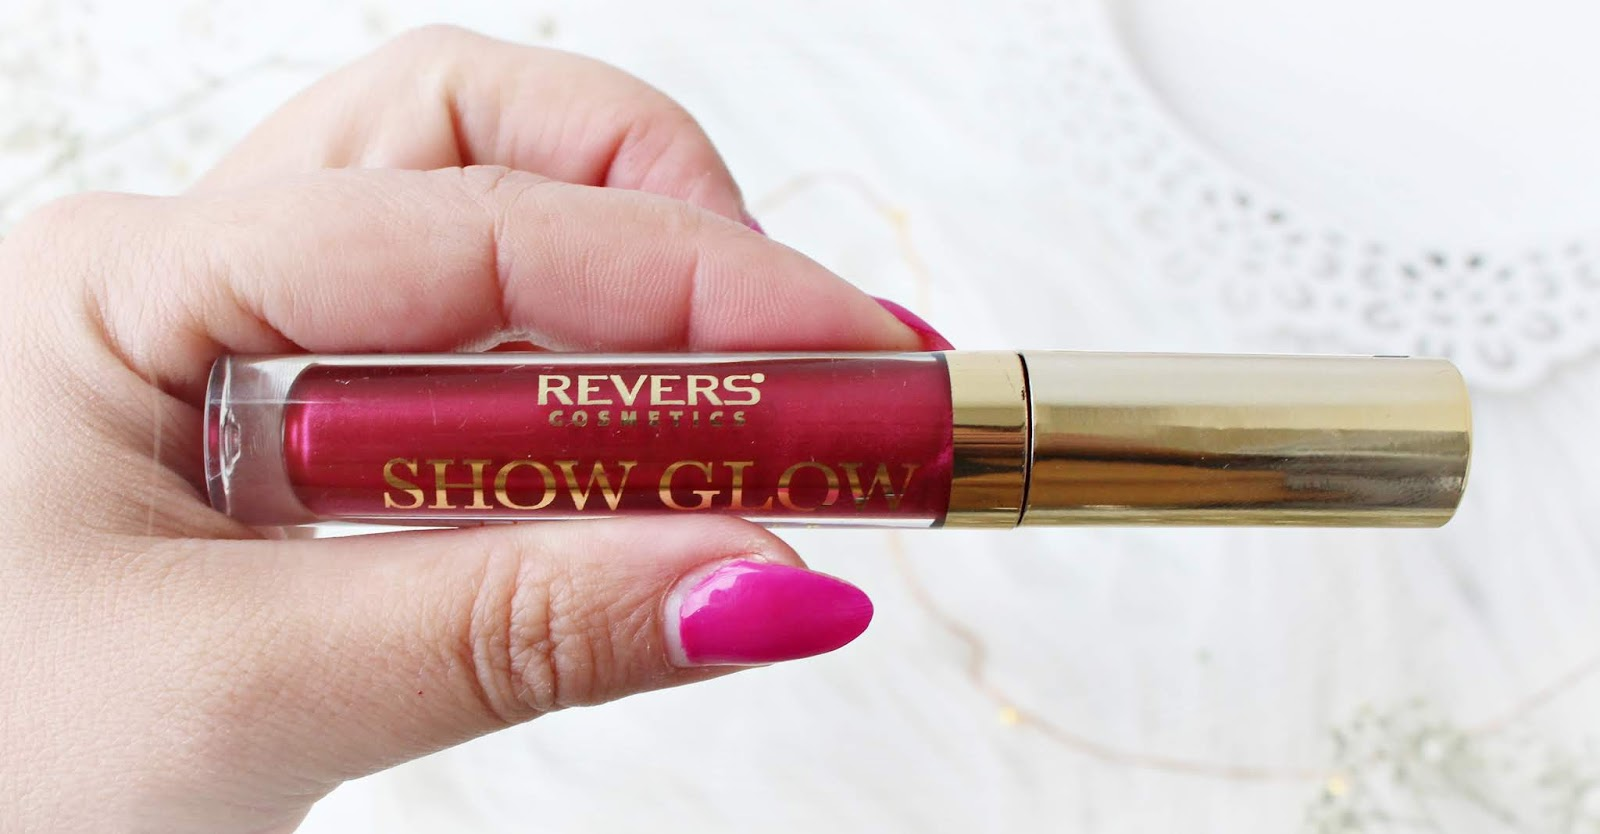 Lakier do ust SHOW GLOW od REVERS Cosmetics